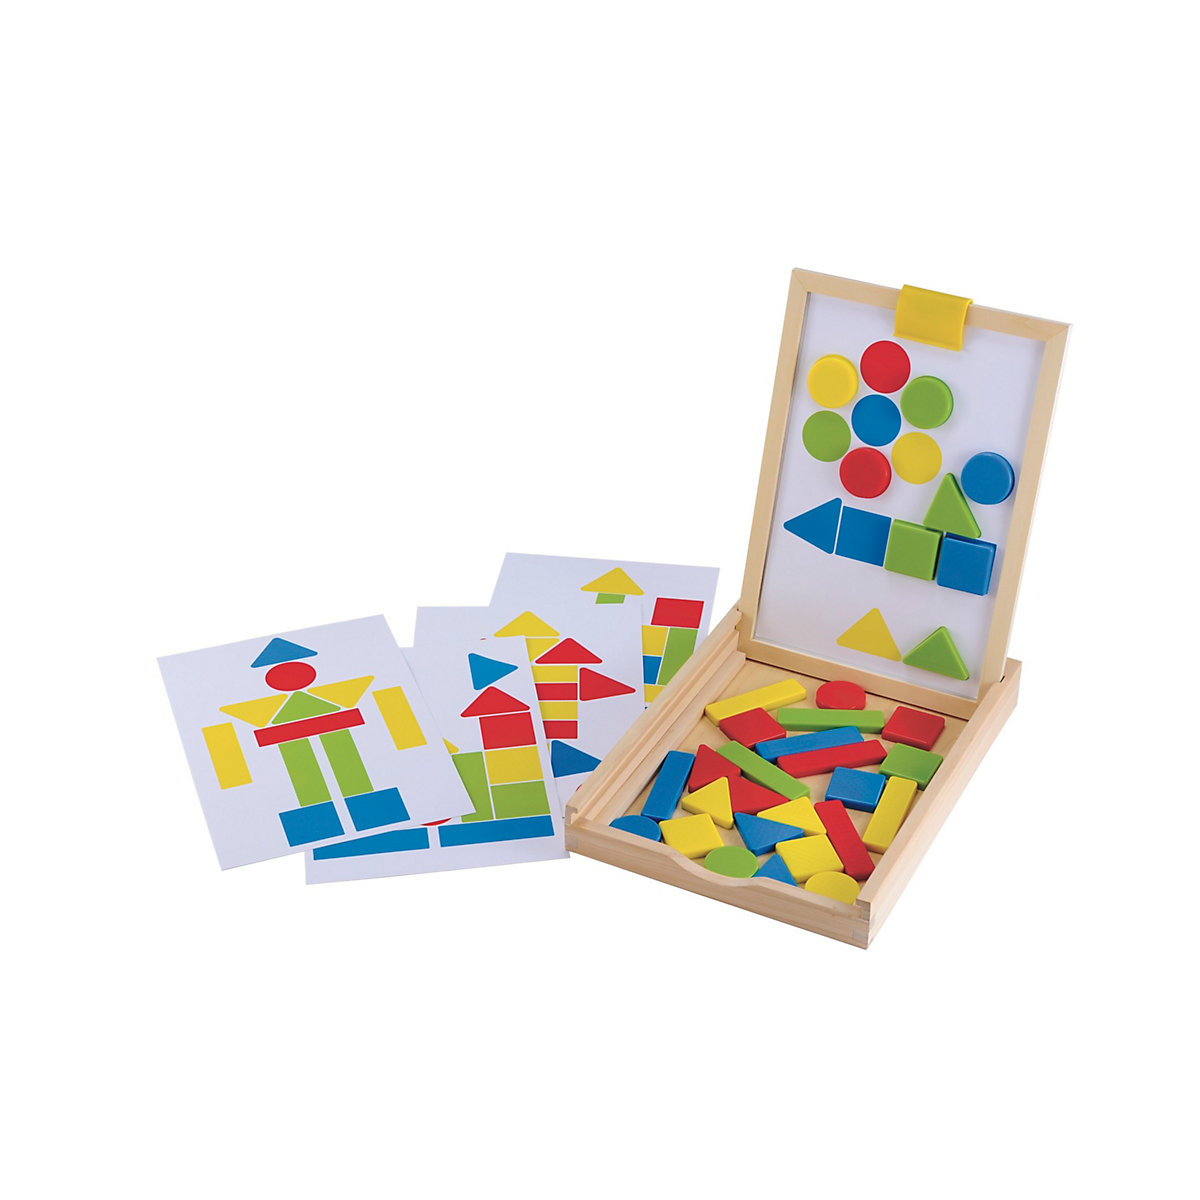 My Magnetic Pattern Board Toy From 2 years